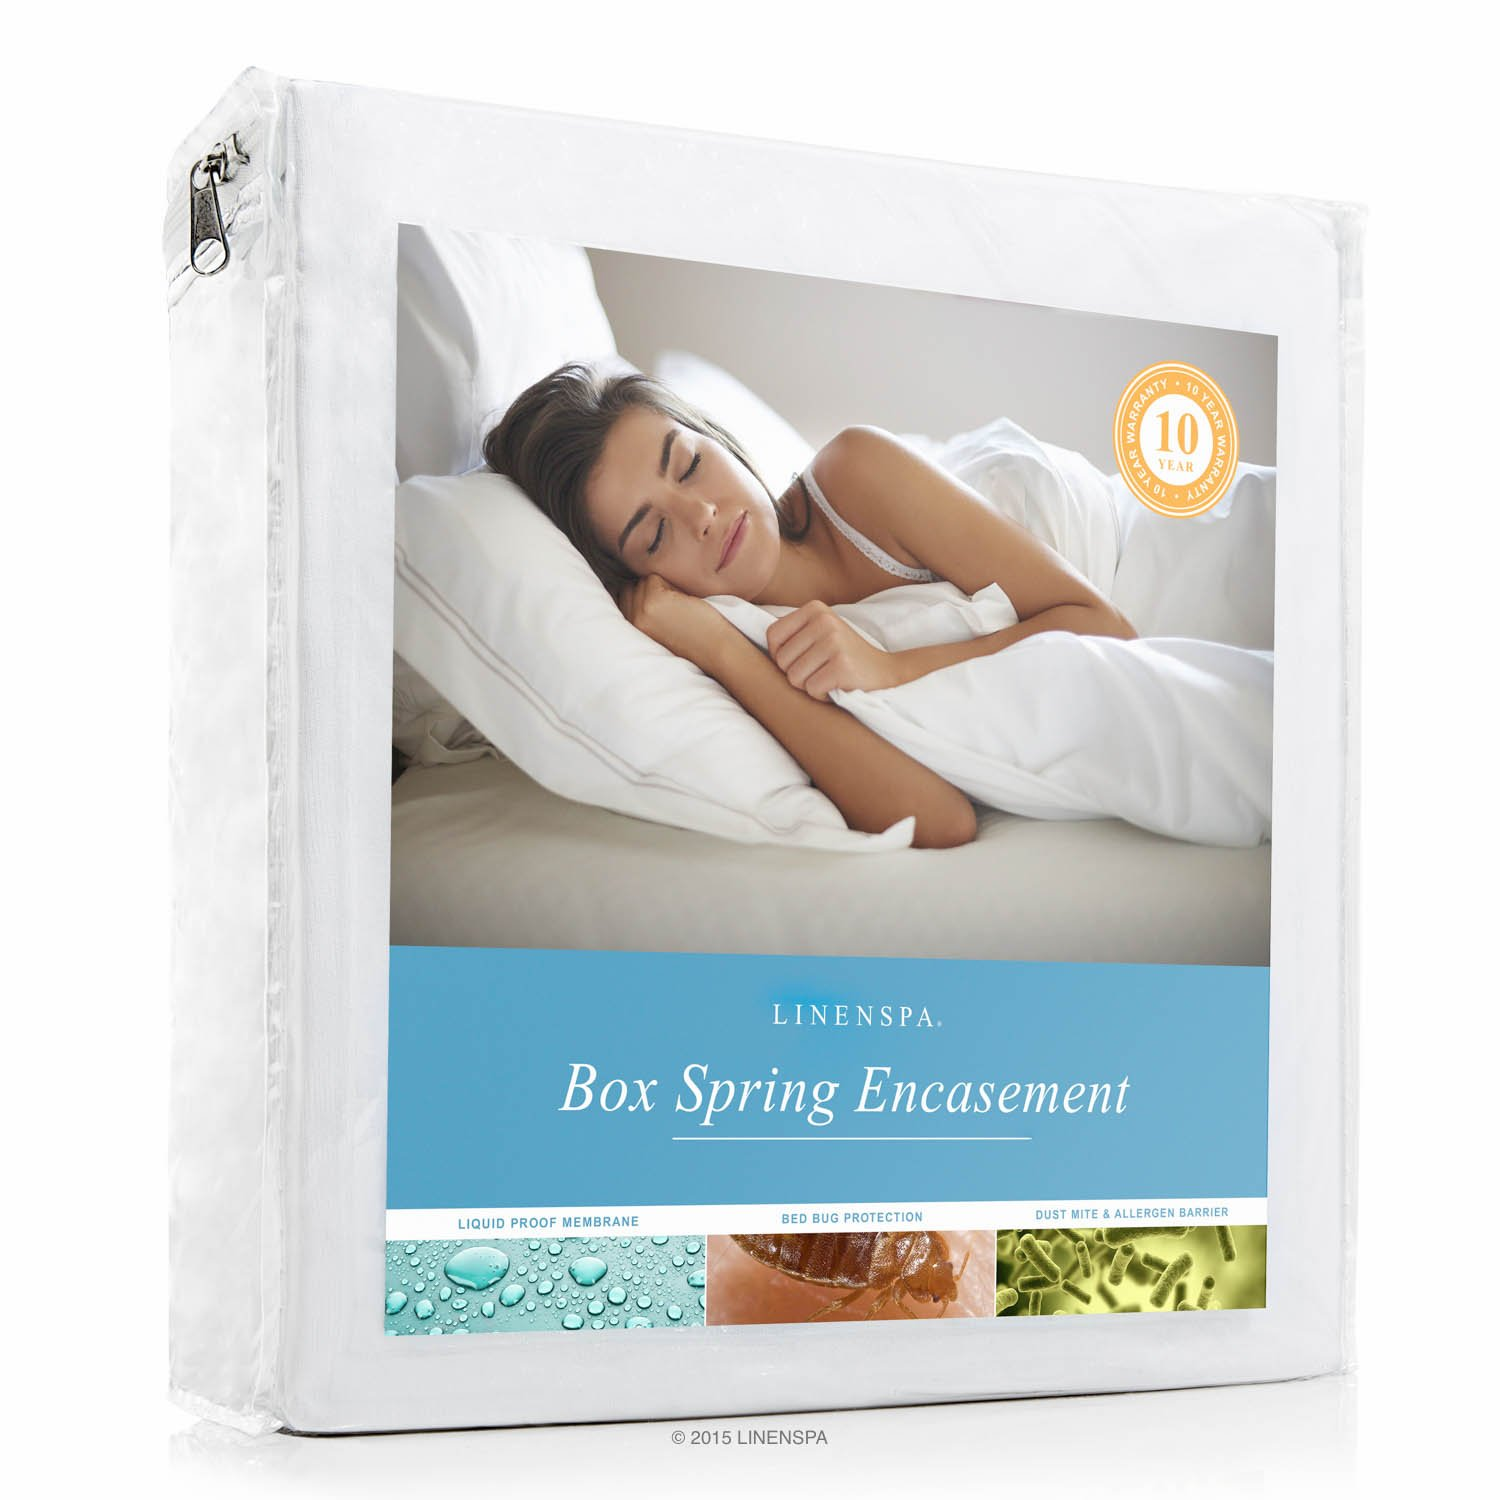 LINENSPA Waterproof Bed Bug Proof Box Spring Encasement Protector - Queen by Linenspa